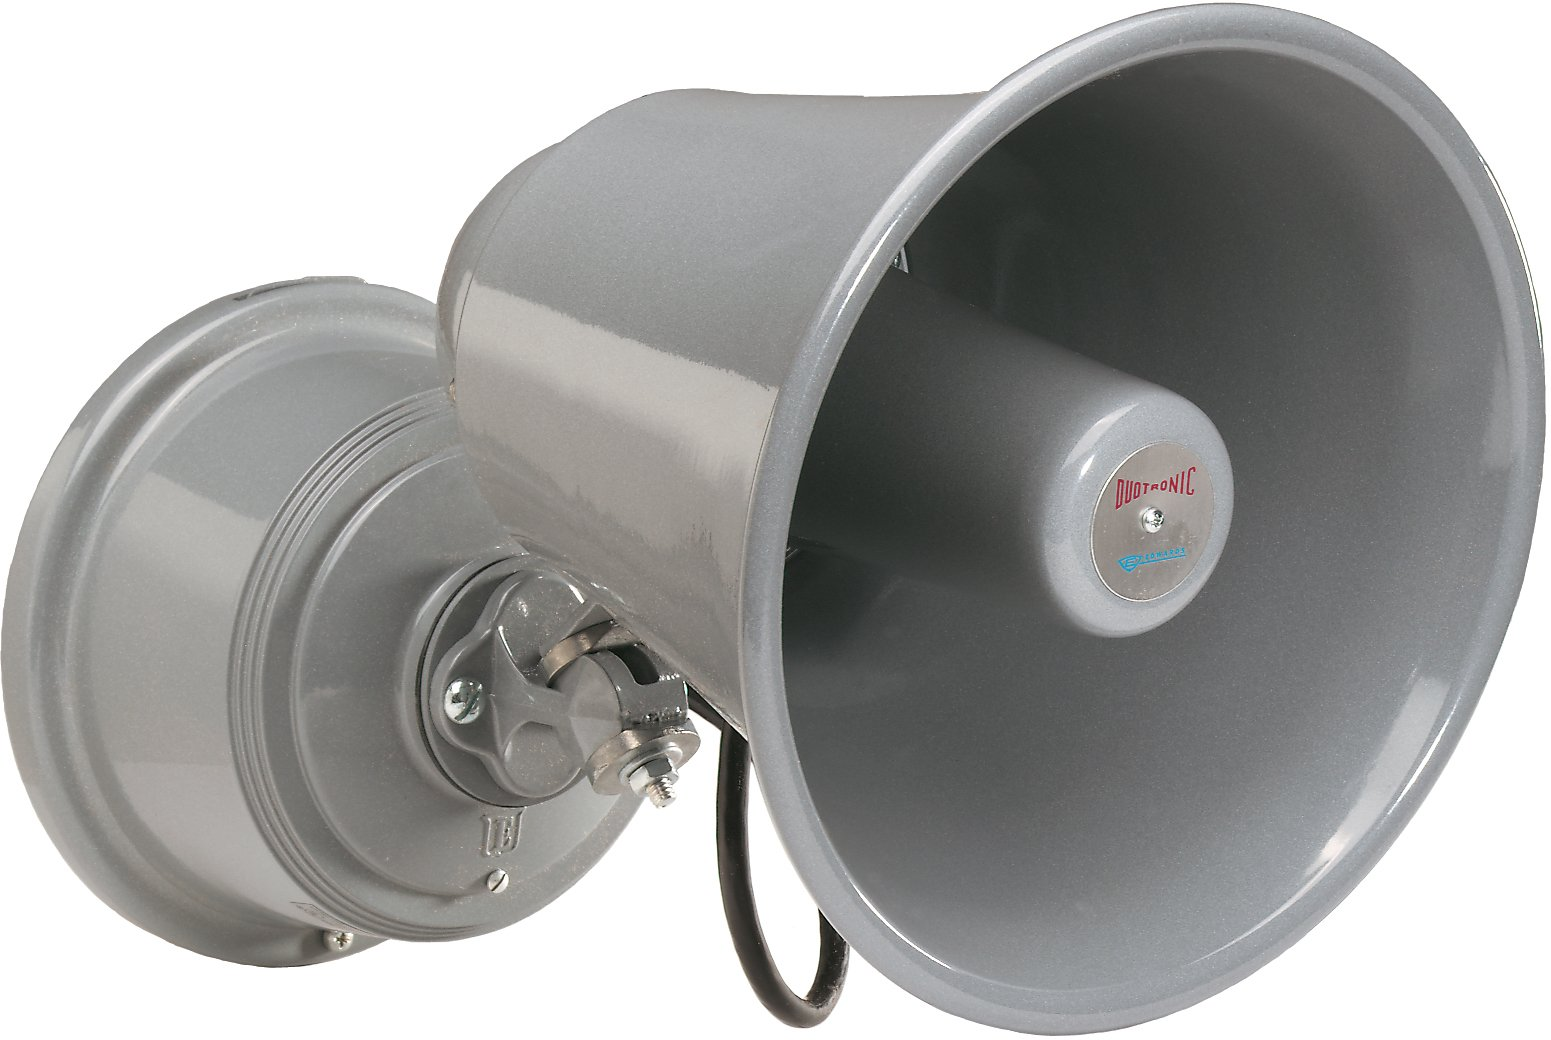 Edwards Signaling 5520-N5 Electronic Horn and Siren, 124/114 db (Horn), 112/102 db (Siren), Low Current, High Decibel, 120V AC, Gray